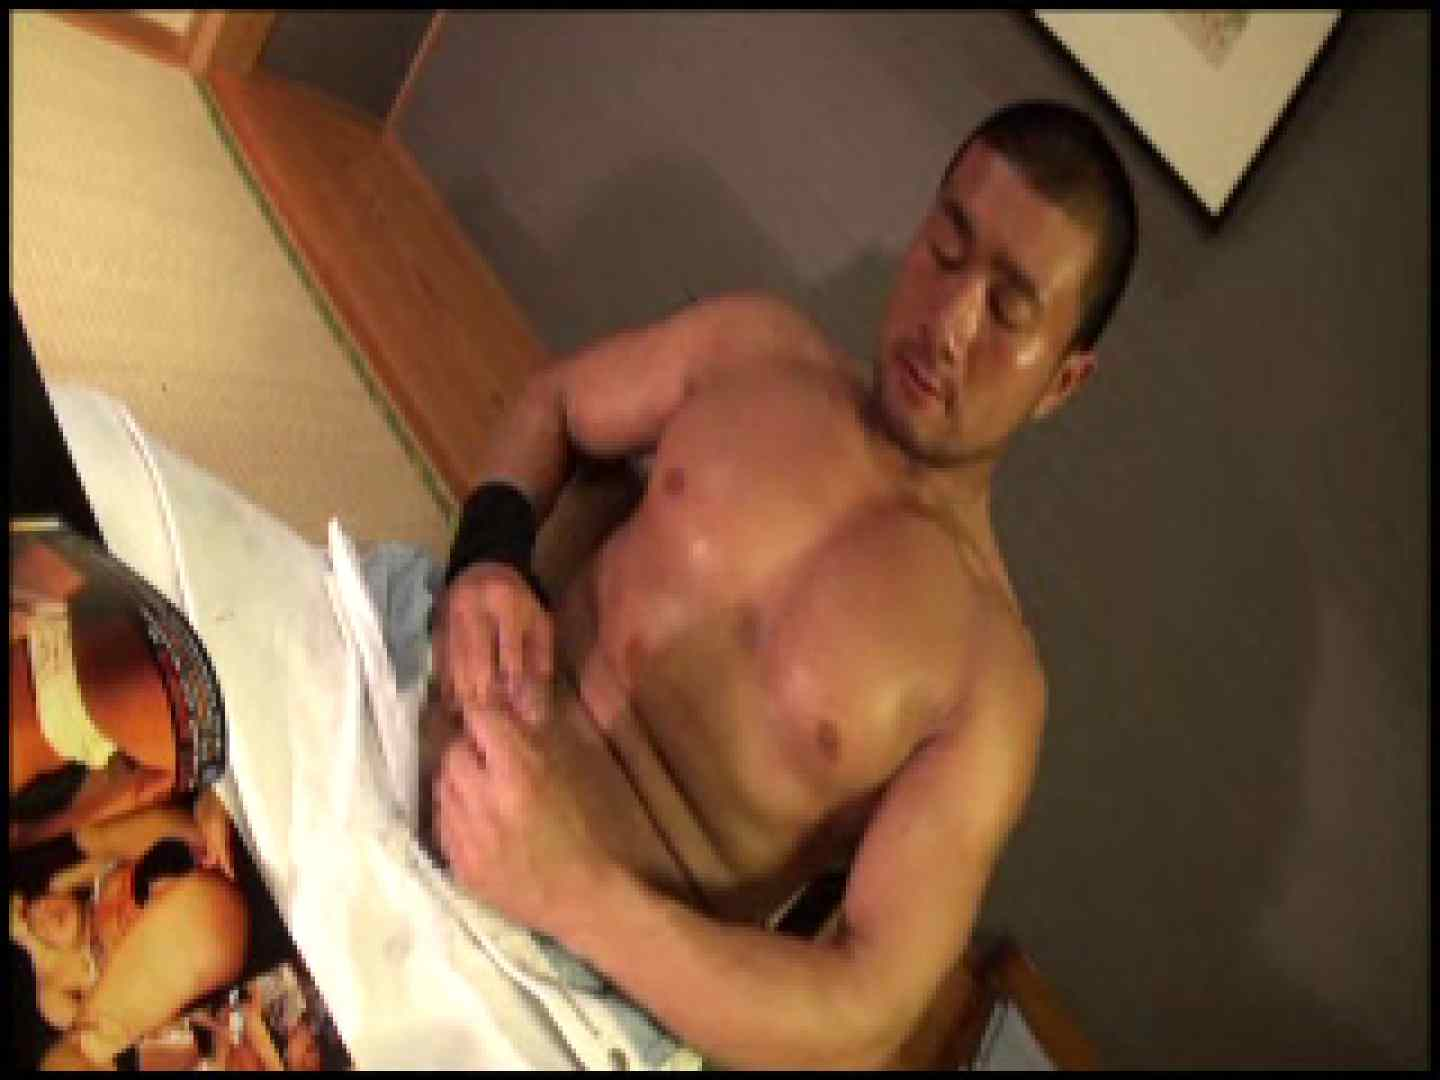 SUPER MUSCLE GAIN!!〜鋼鉄の筋肉〜vol.01  オナニー 男同士動画 100pic 11